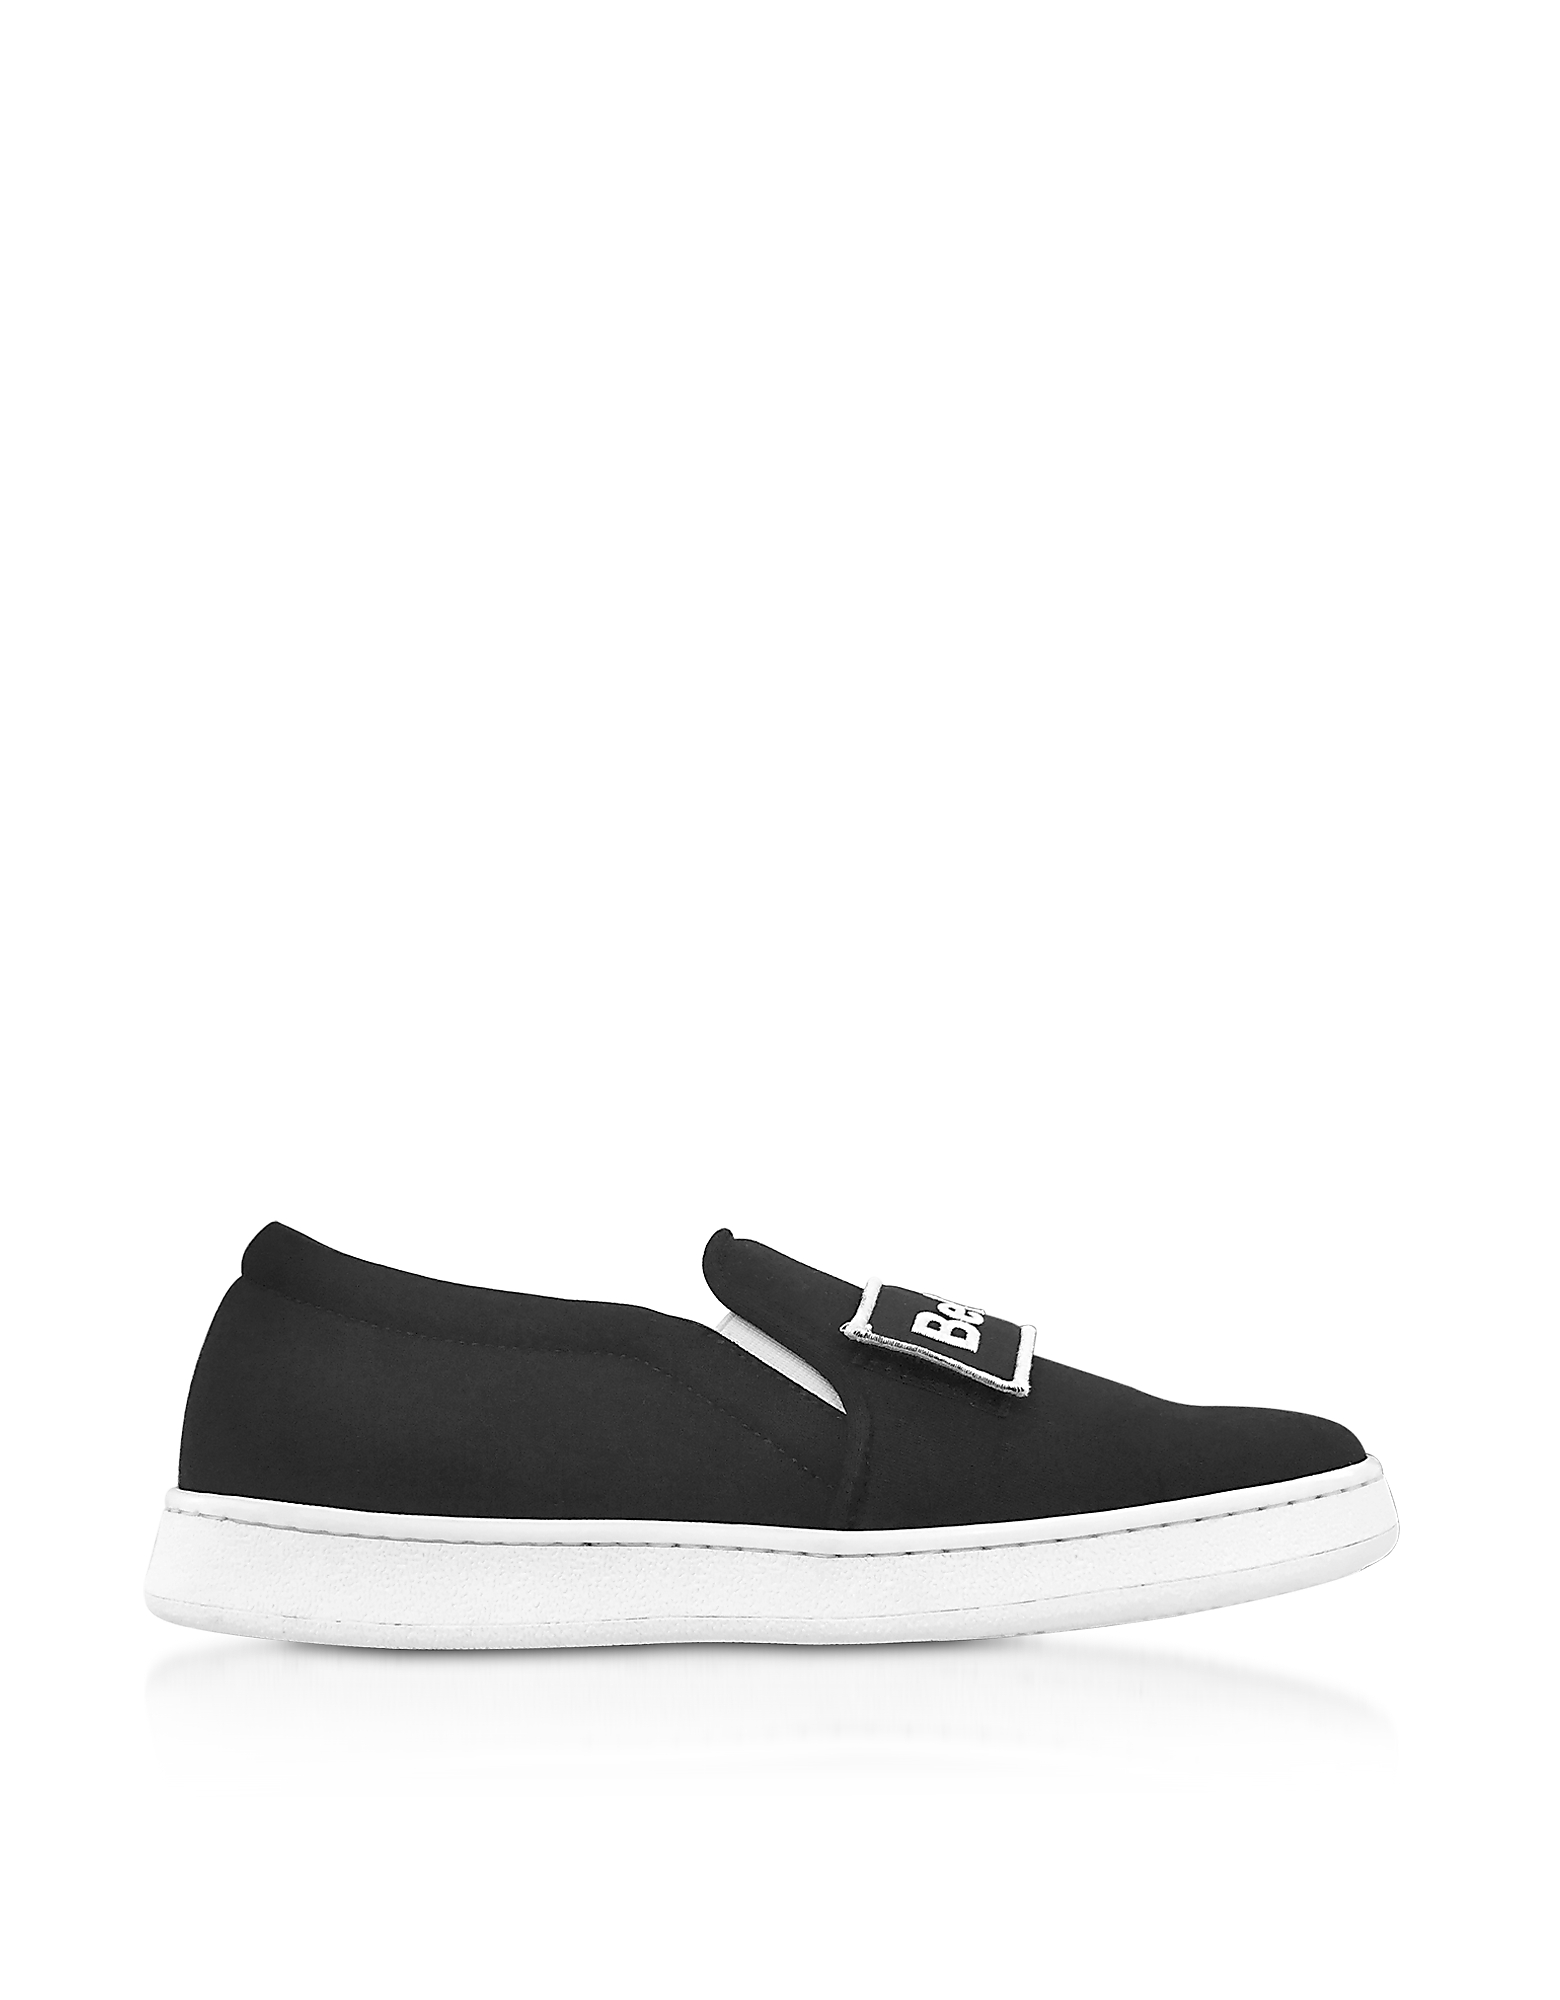 Joshua Sanders Shoes, Naomi Black Fabric Slip-on Sneaker